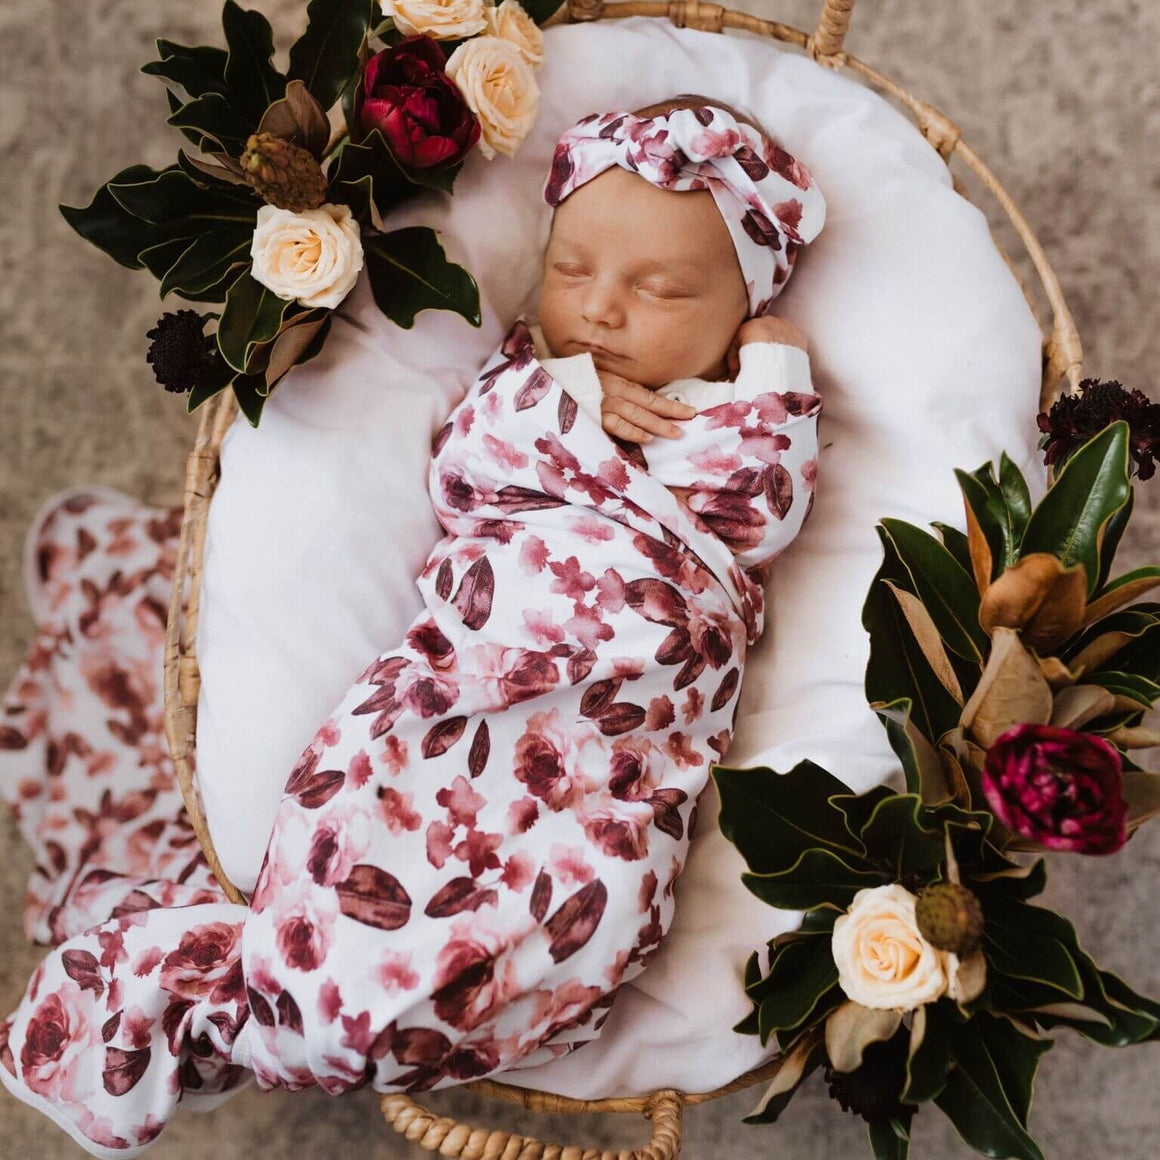 Fleur jersey swaddle and bow on baby